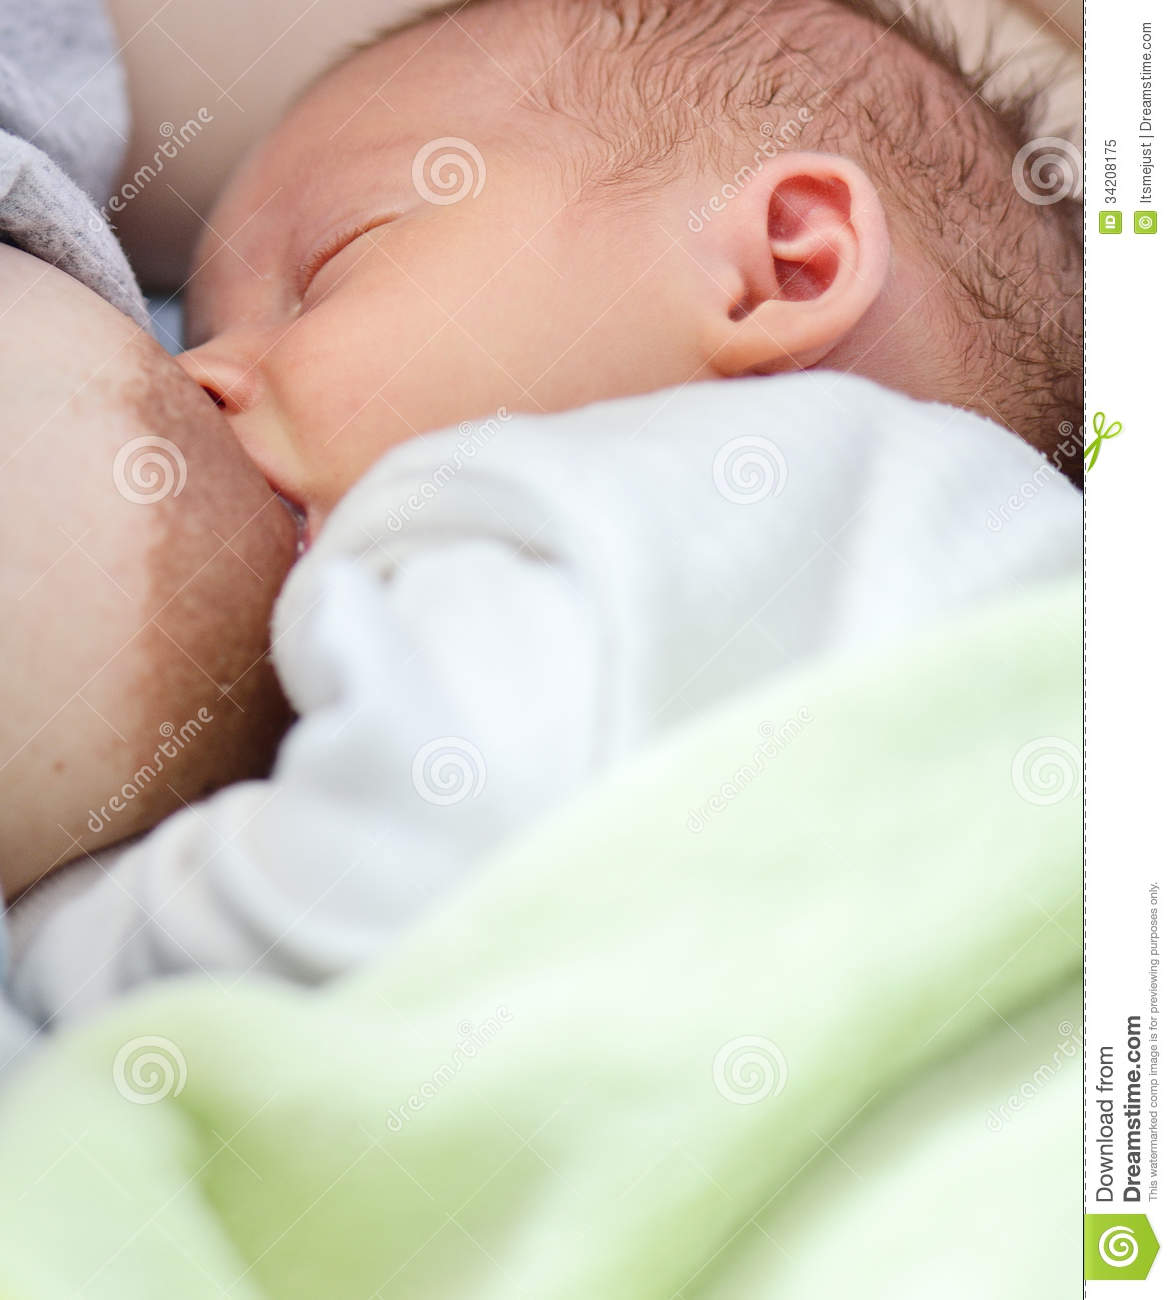 newborn boys with enlarged breasts jpg 422x640